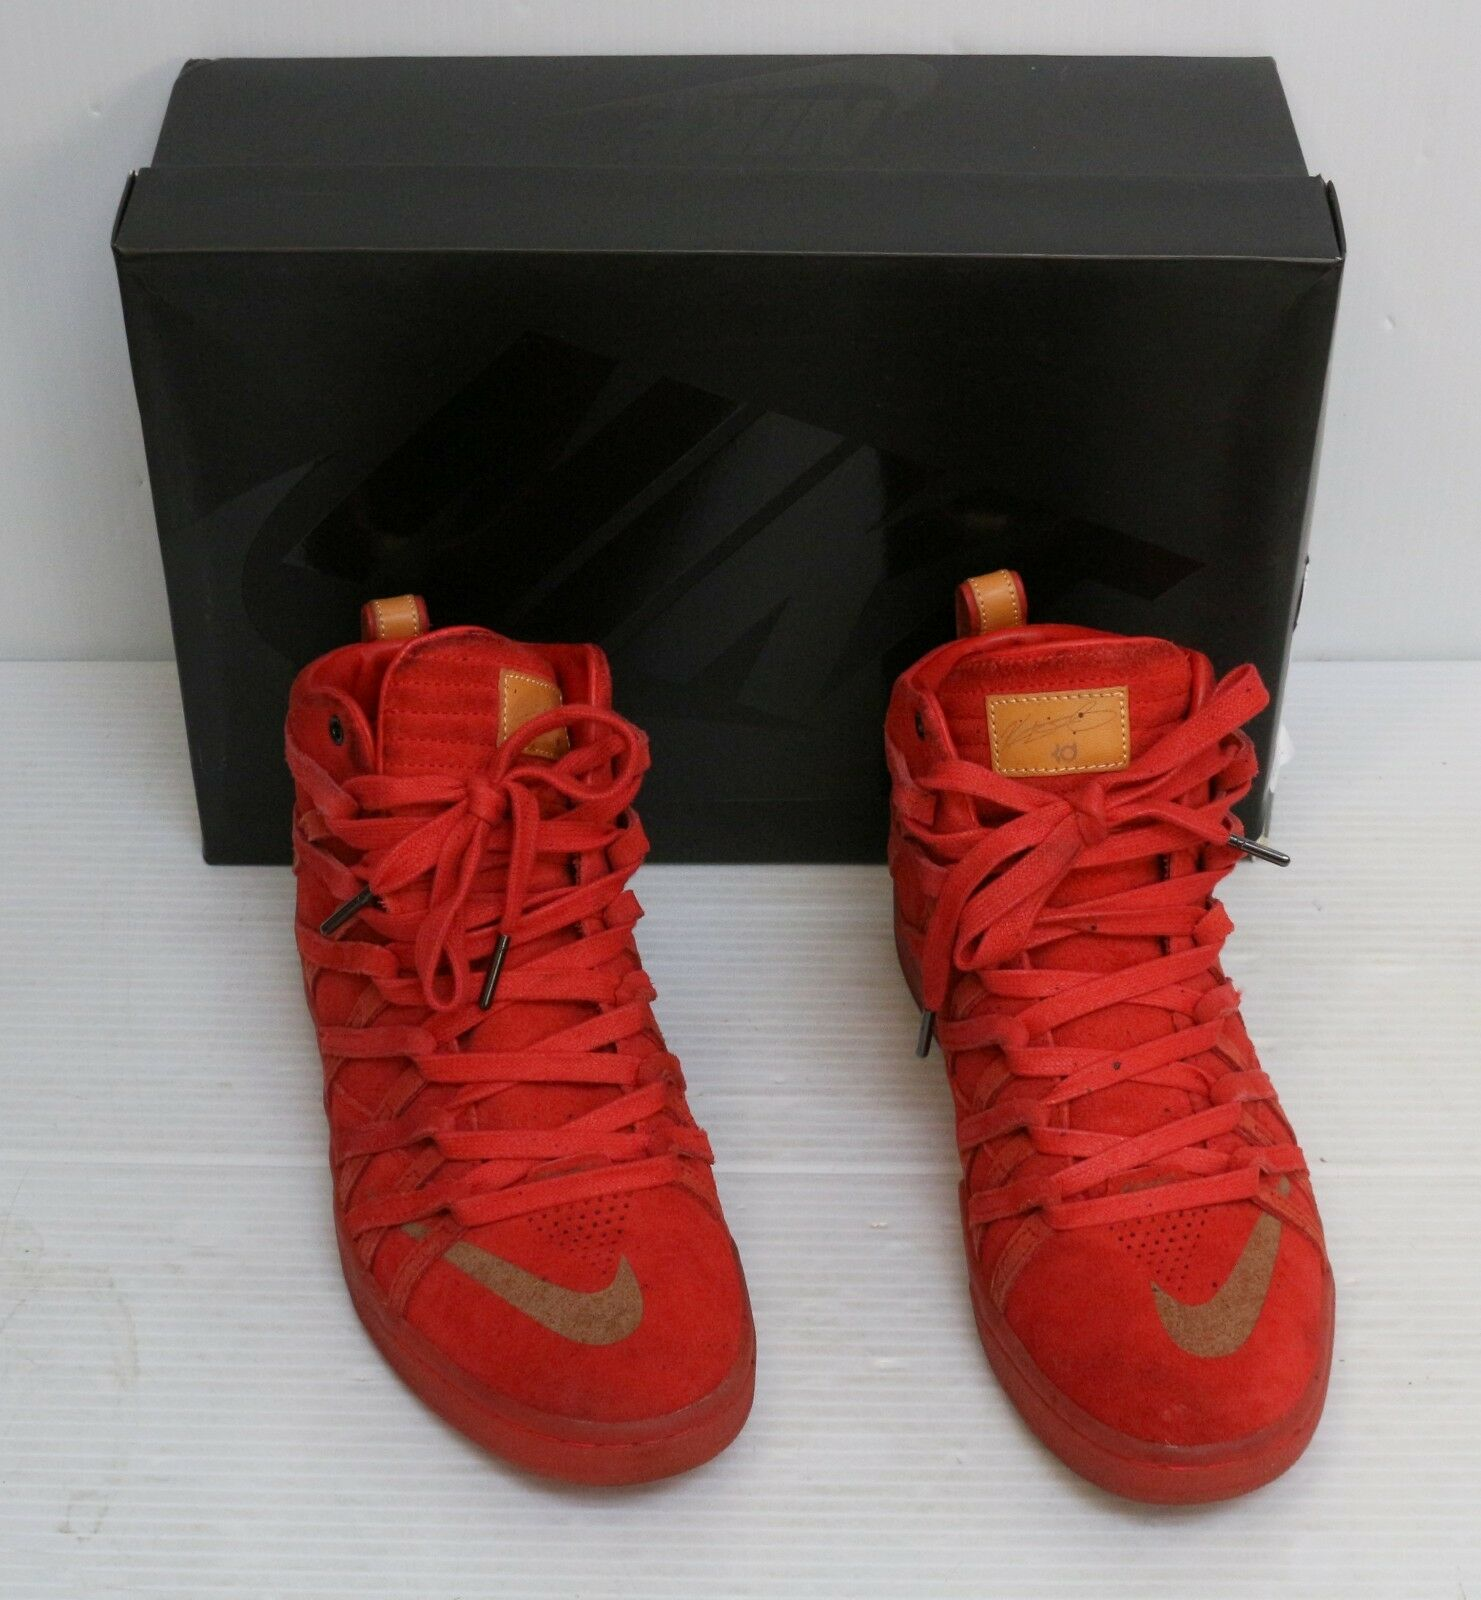 Nike KD 7 VII NSW Lifestyle QS Challenge Red Suede 653871-600 Sz 9 DS